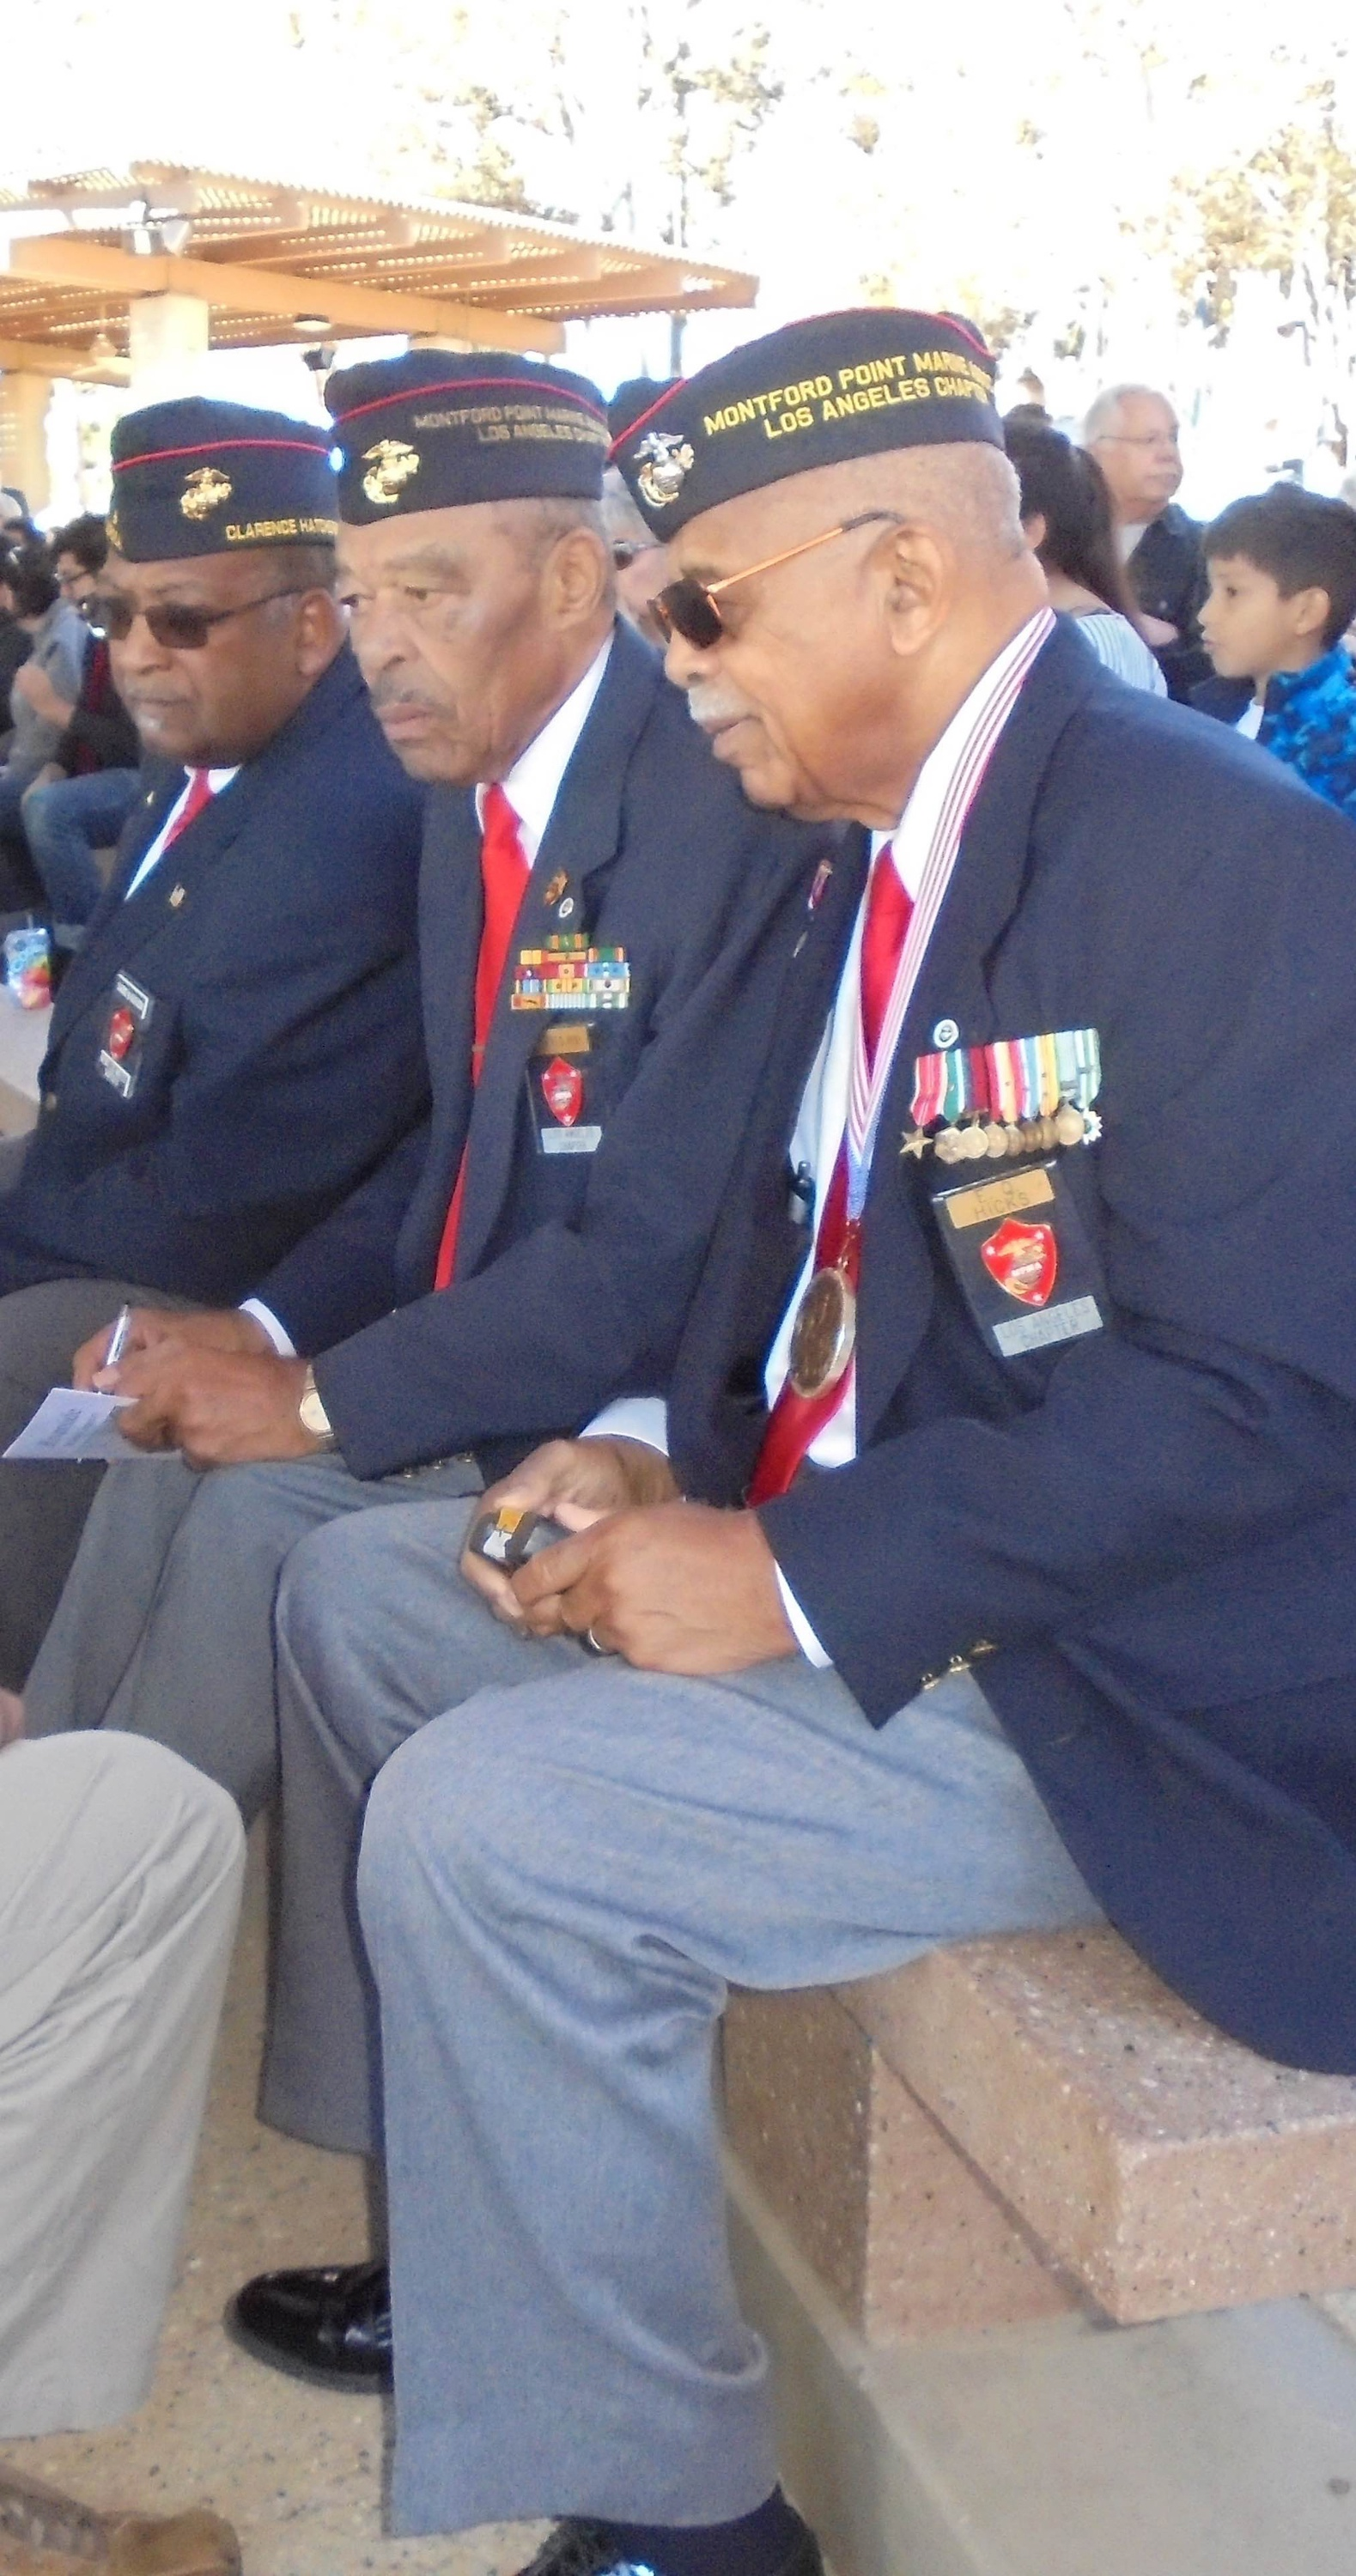 Montford Point Veterans